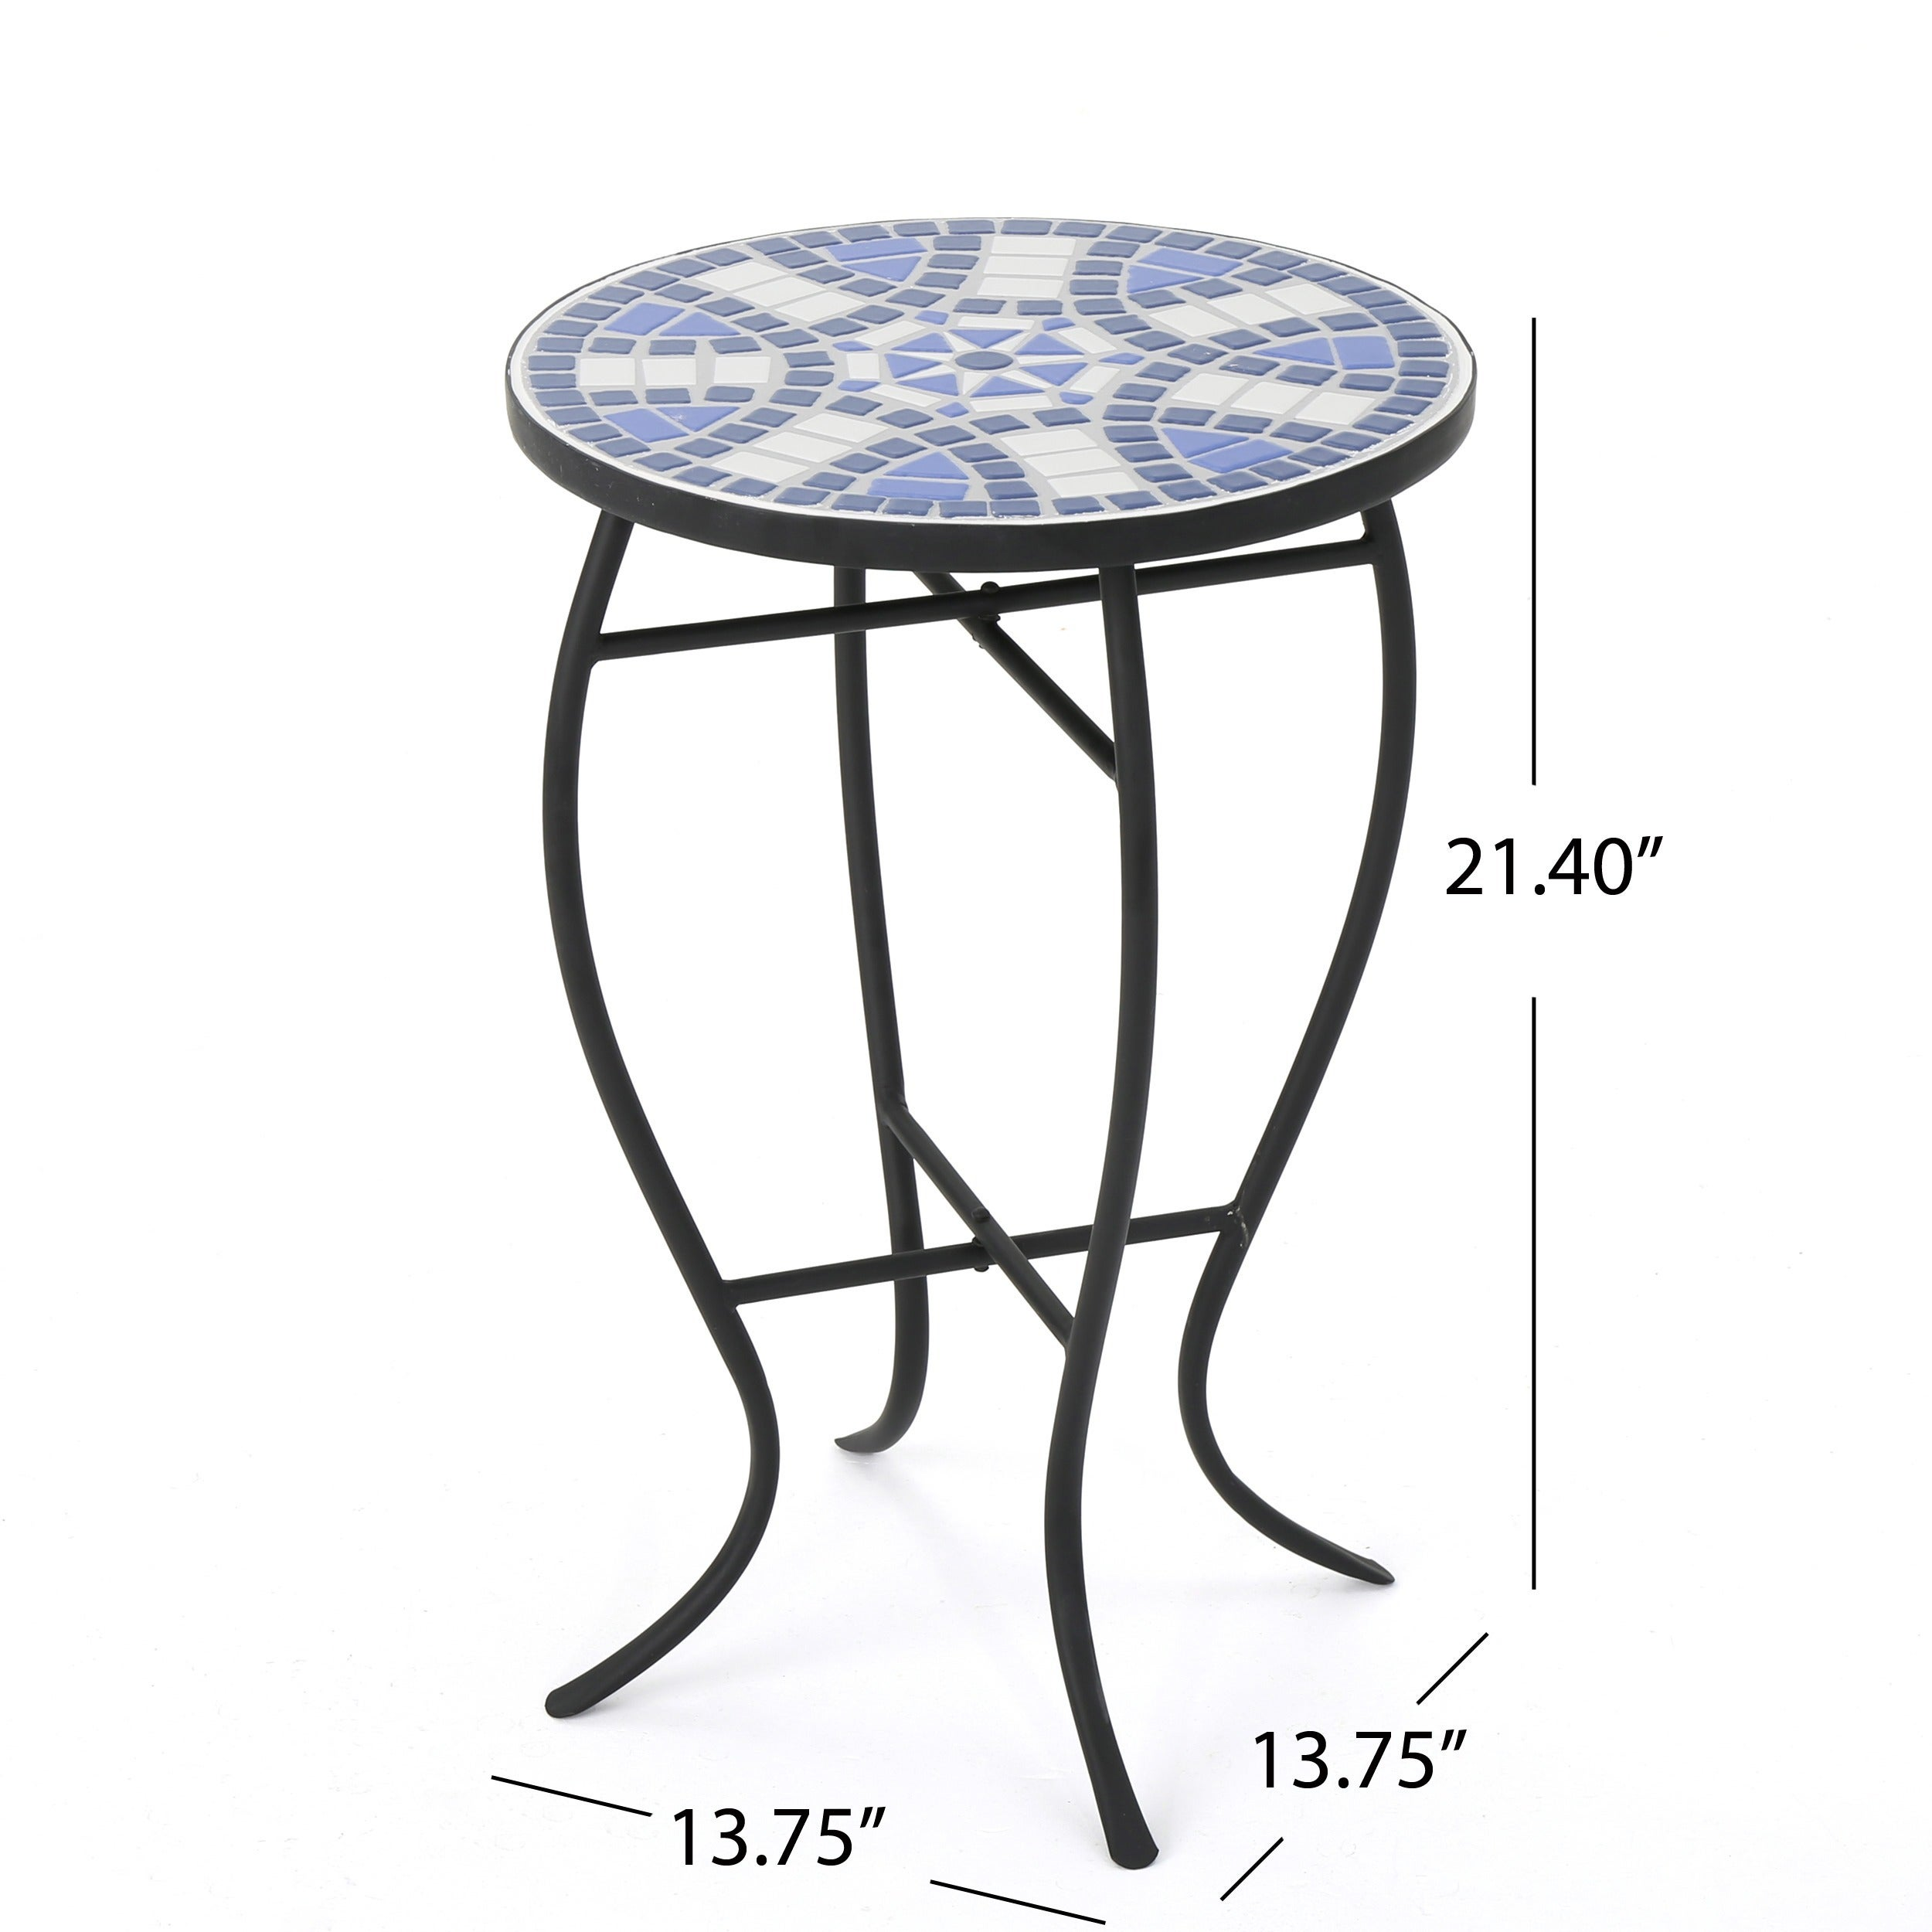 Shop Han Outdoor Round Tile Side Table By Christopher Knight Home